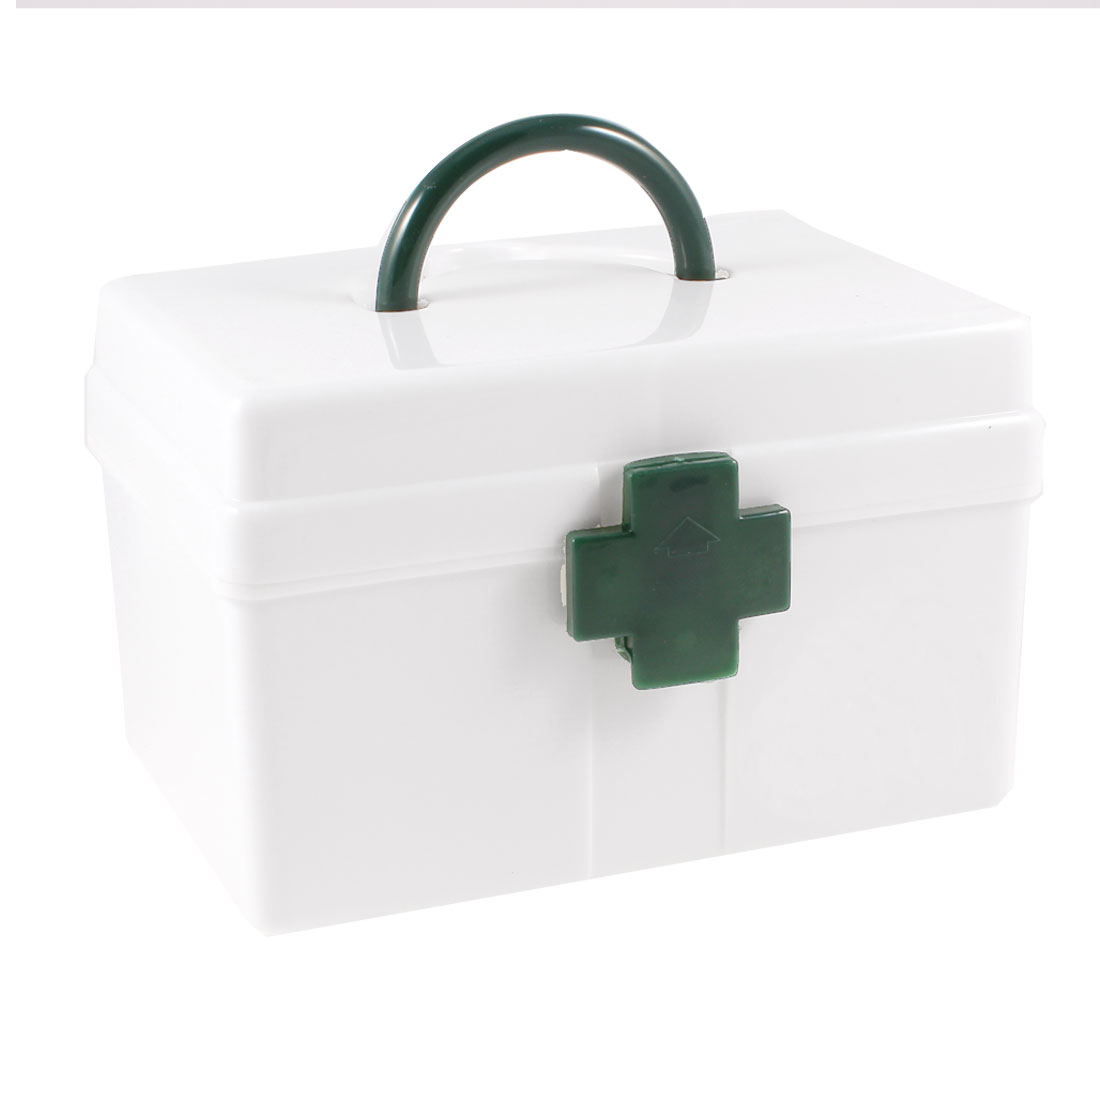 "Portable White Plastic Kits Medicine Box Storage Case 6.4""x4.5""x4.3"""